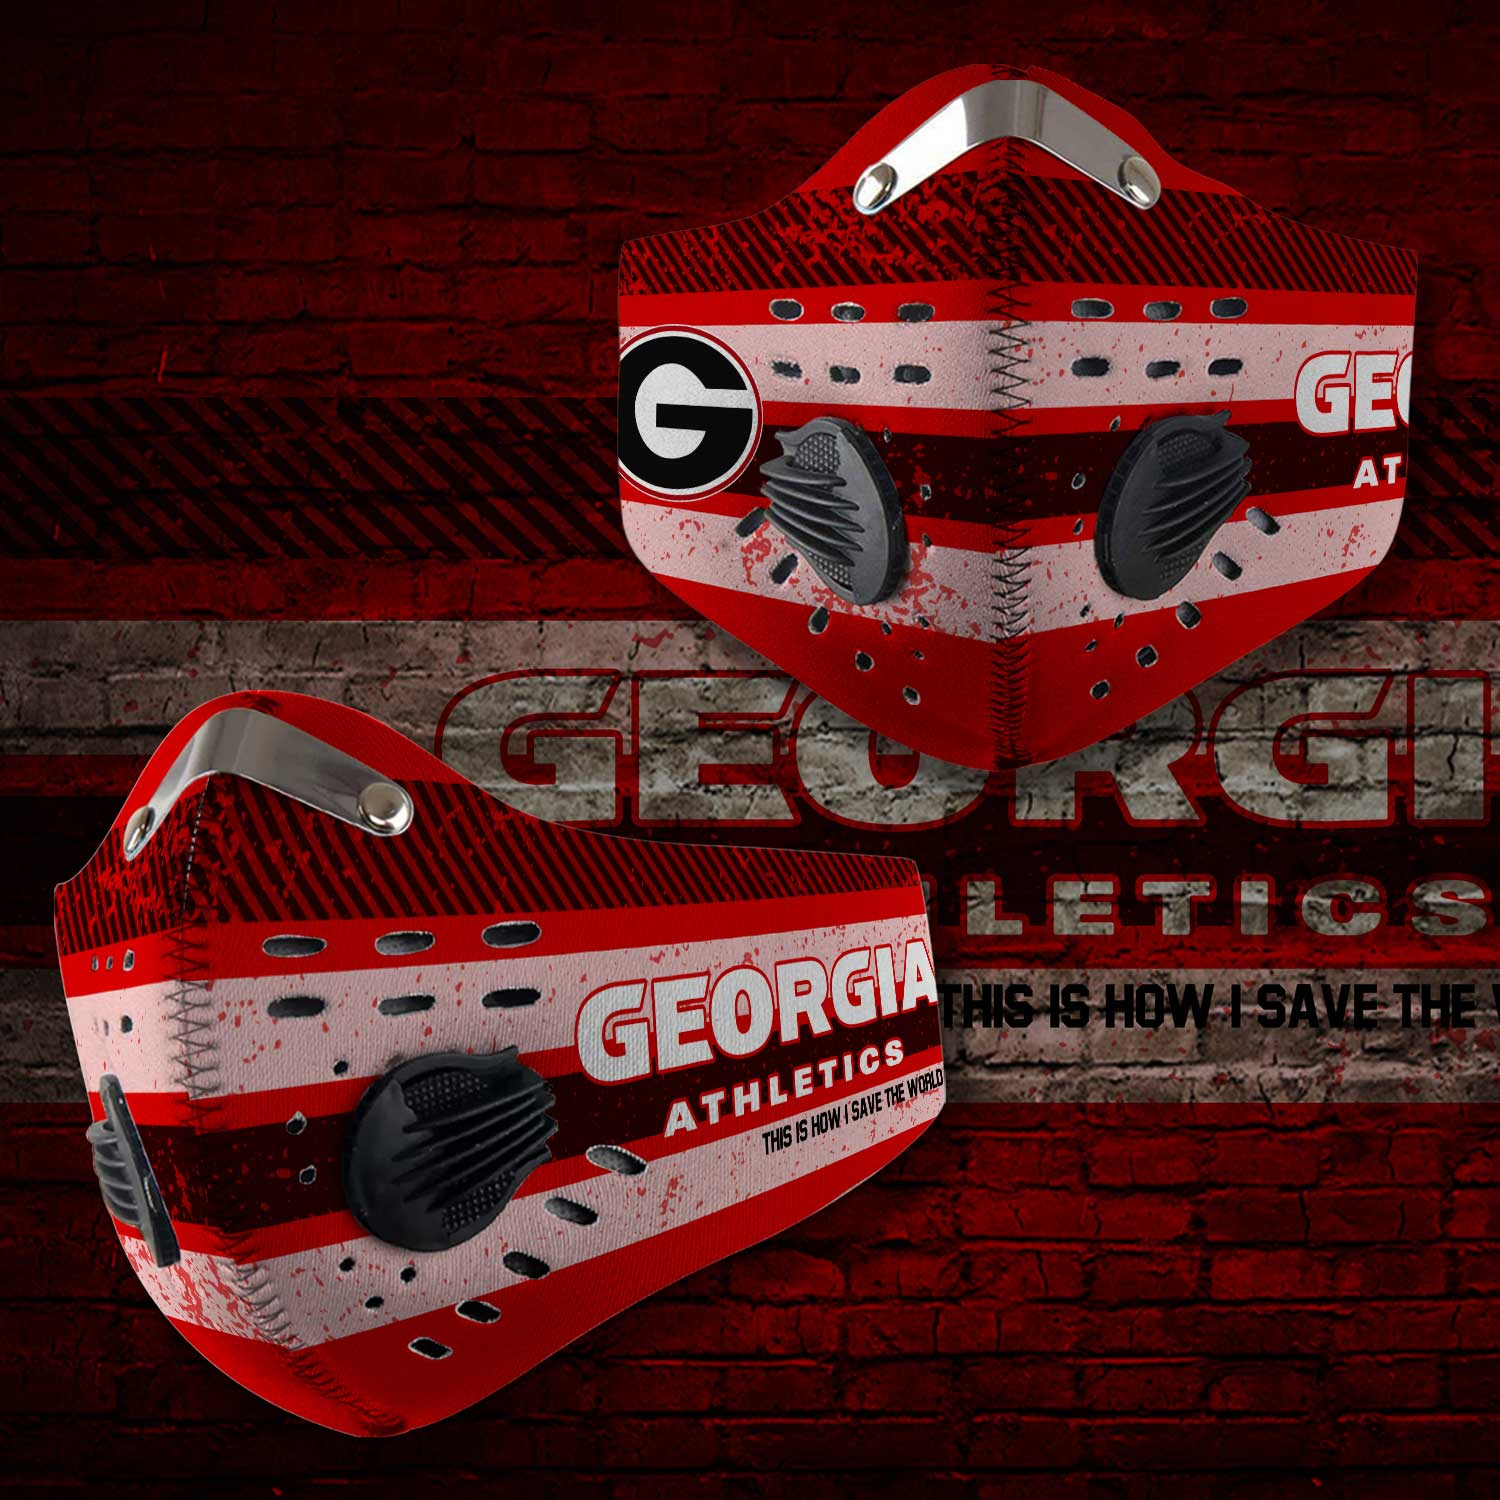 Georgia bulldogs football this is how i save the world carbon filter face mask 1